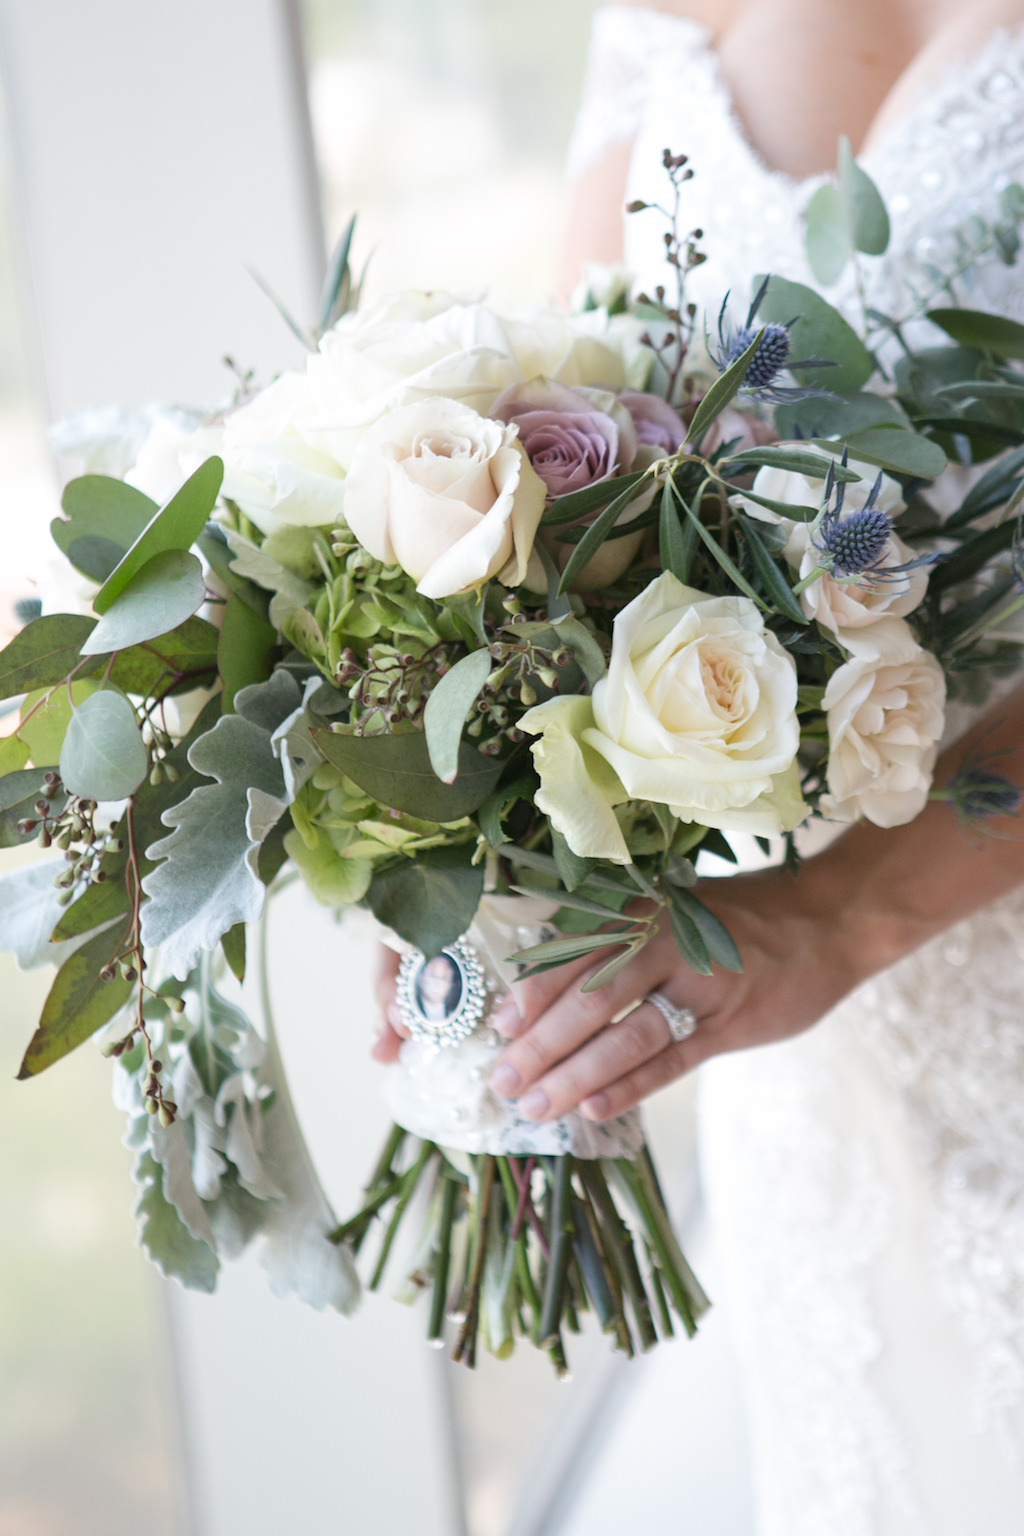 Bridal Portrait with White and Blush Roses, Thistle, and Greenery with Photo Memory Charm   Tampa Wedding Photographer Carrie Wildes Photography